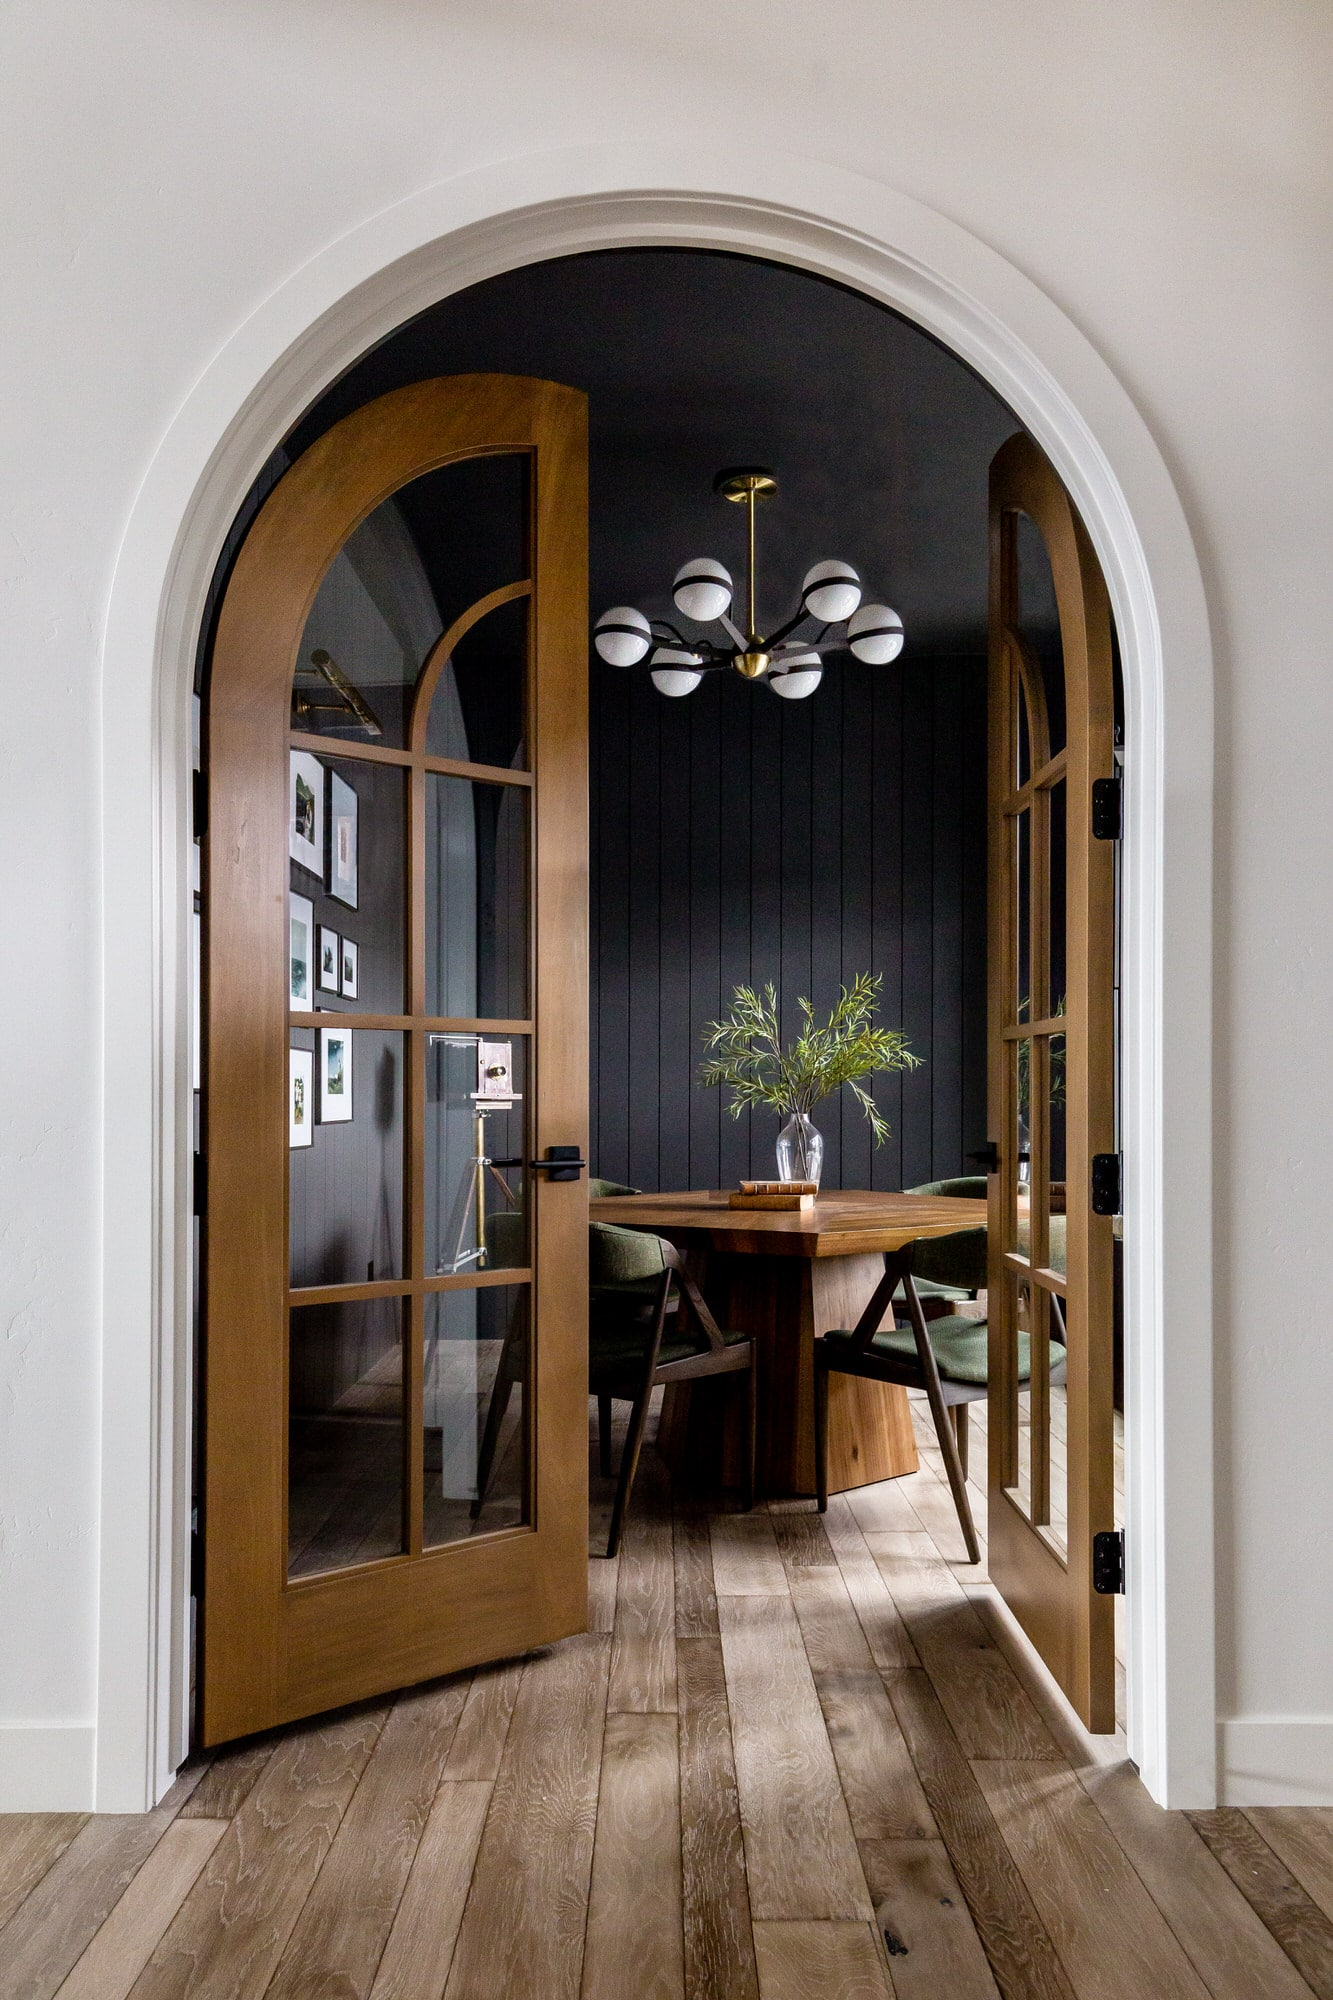 House of Jade dining room with arched doors